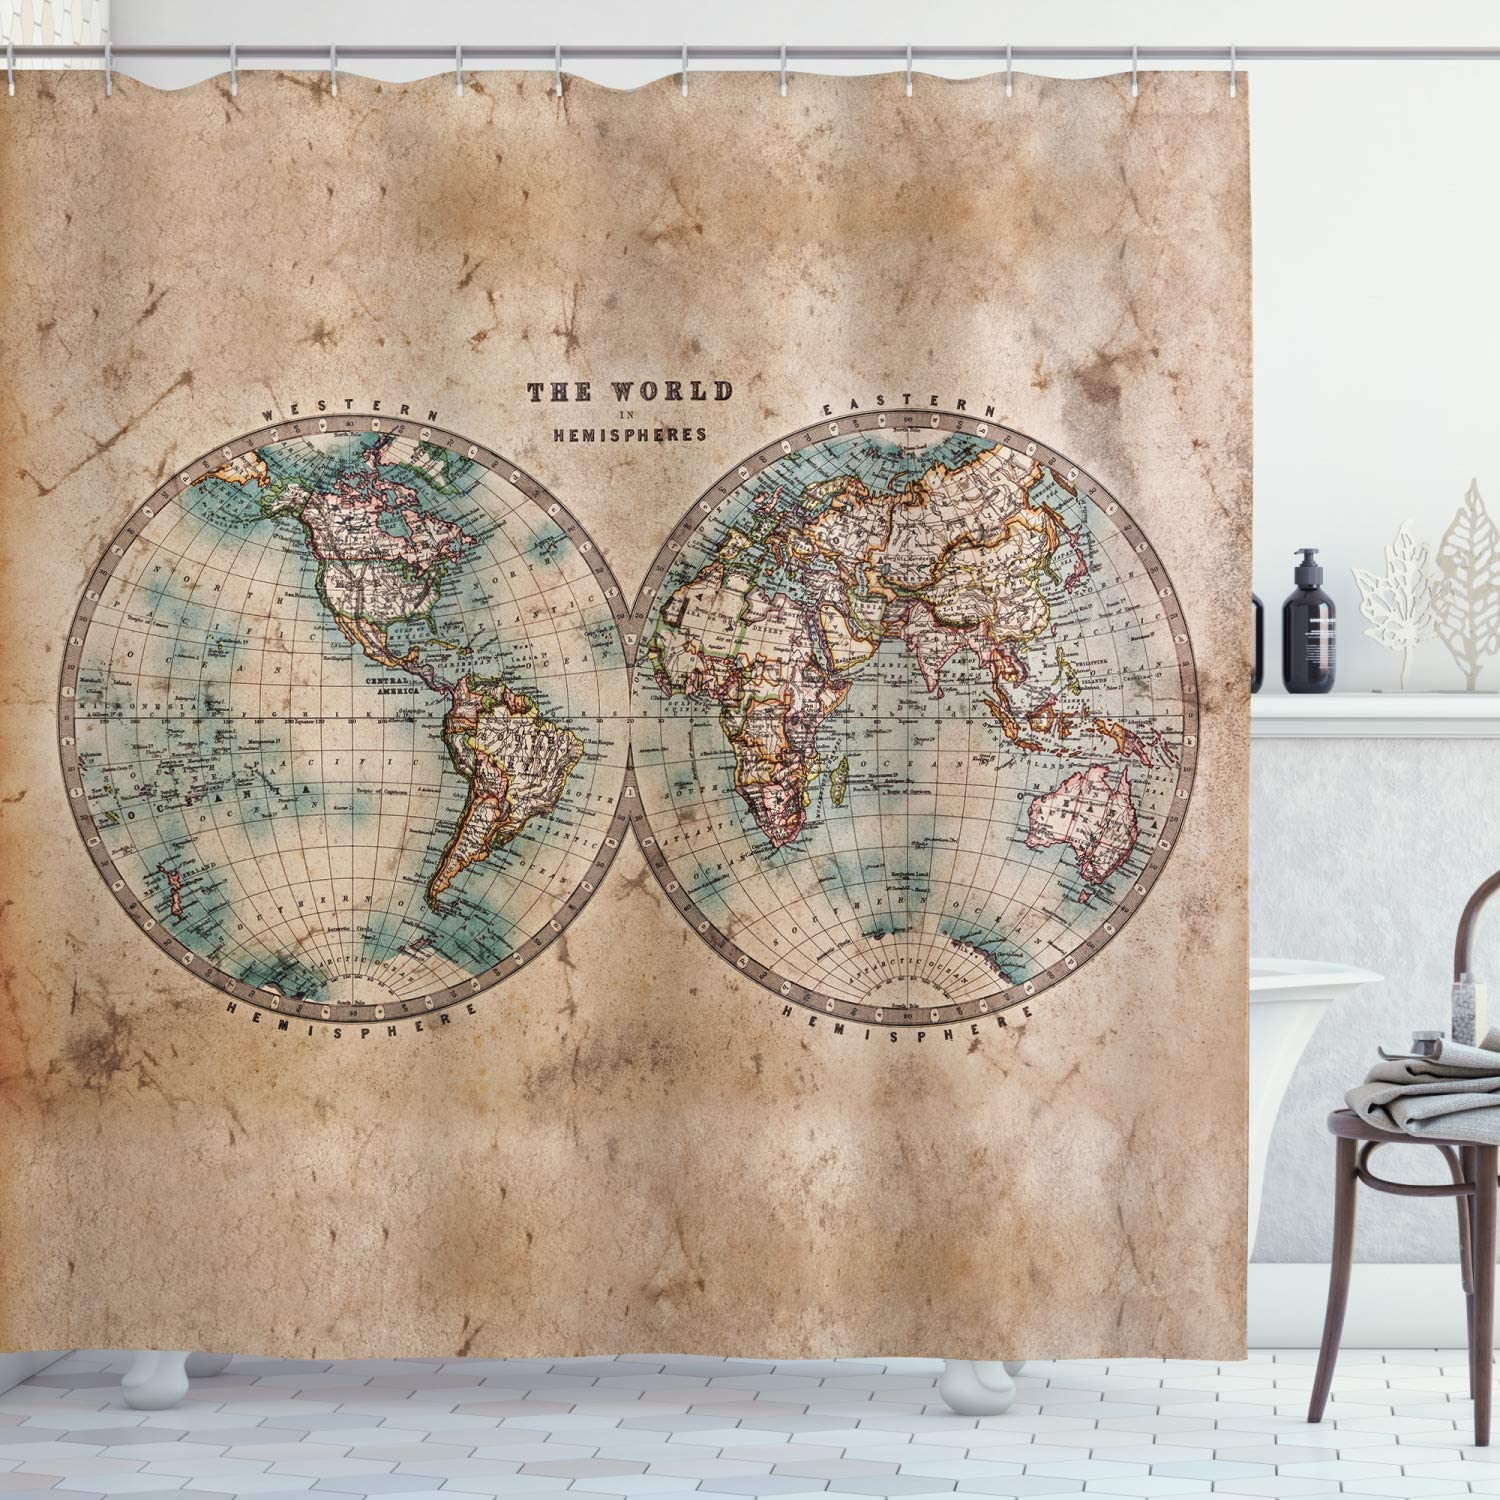 Ambesonne World Map Shower Curtain, World in Hemispheres Vintage Old Map Design Geography Historyme, Cloth Fabric Bathroom Decor Set with Hooks, 84